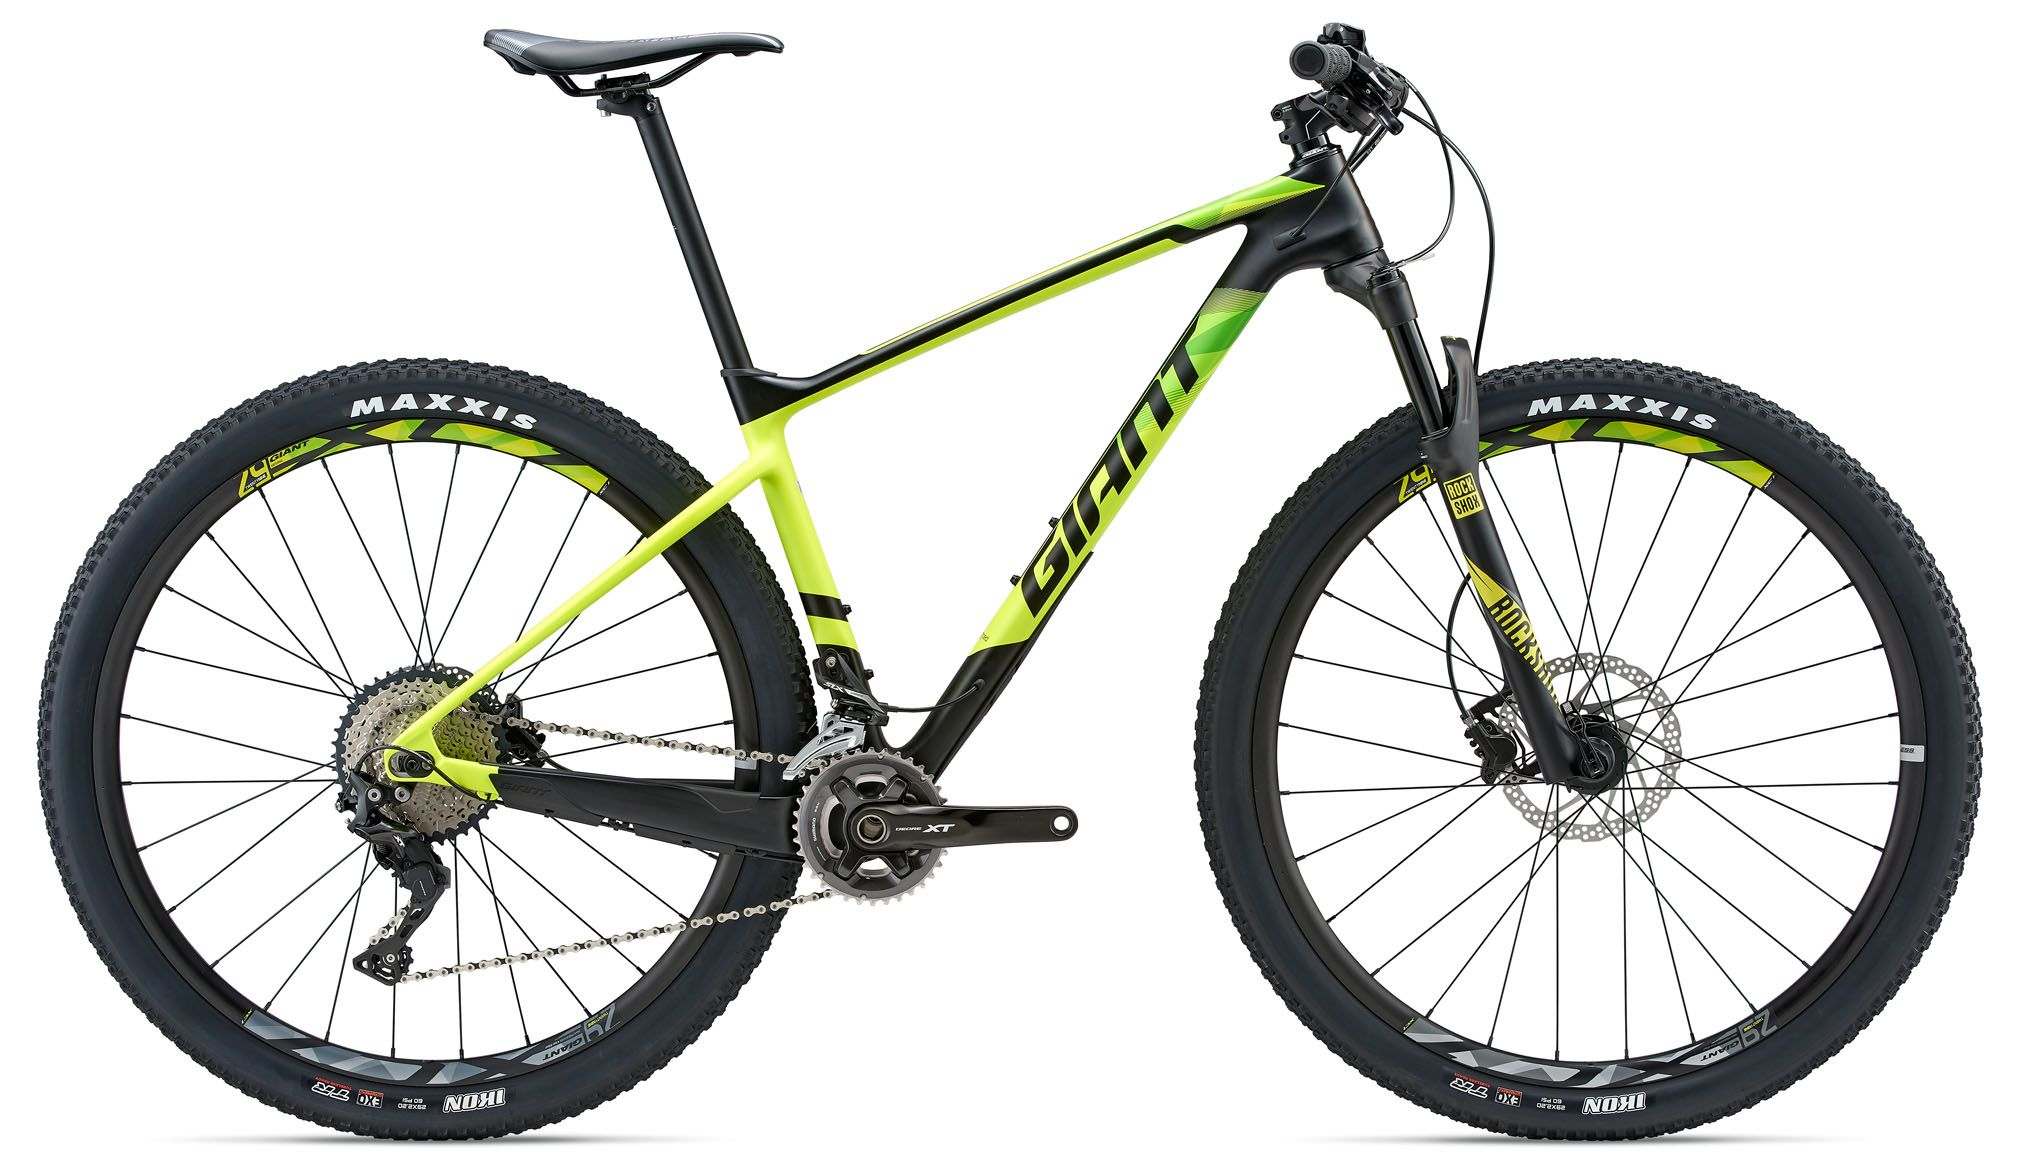 Велосипед Giant XTC Advanced 29er 2 GE 2018 велосипед giant tcr advanced sl 2 2017